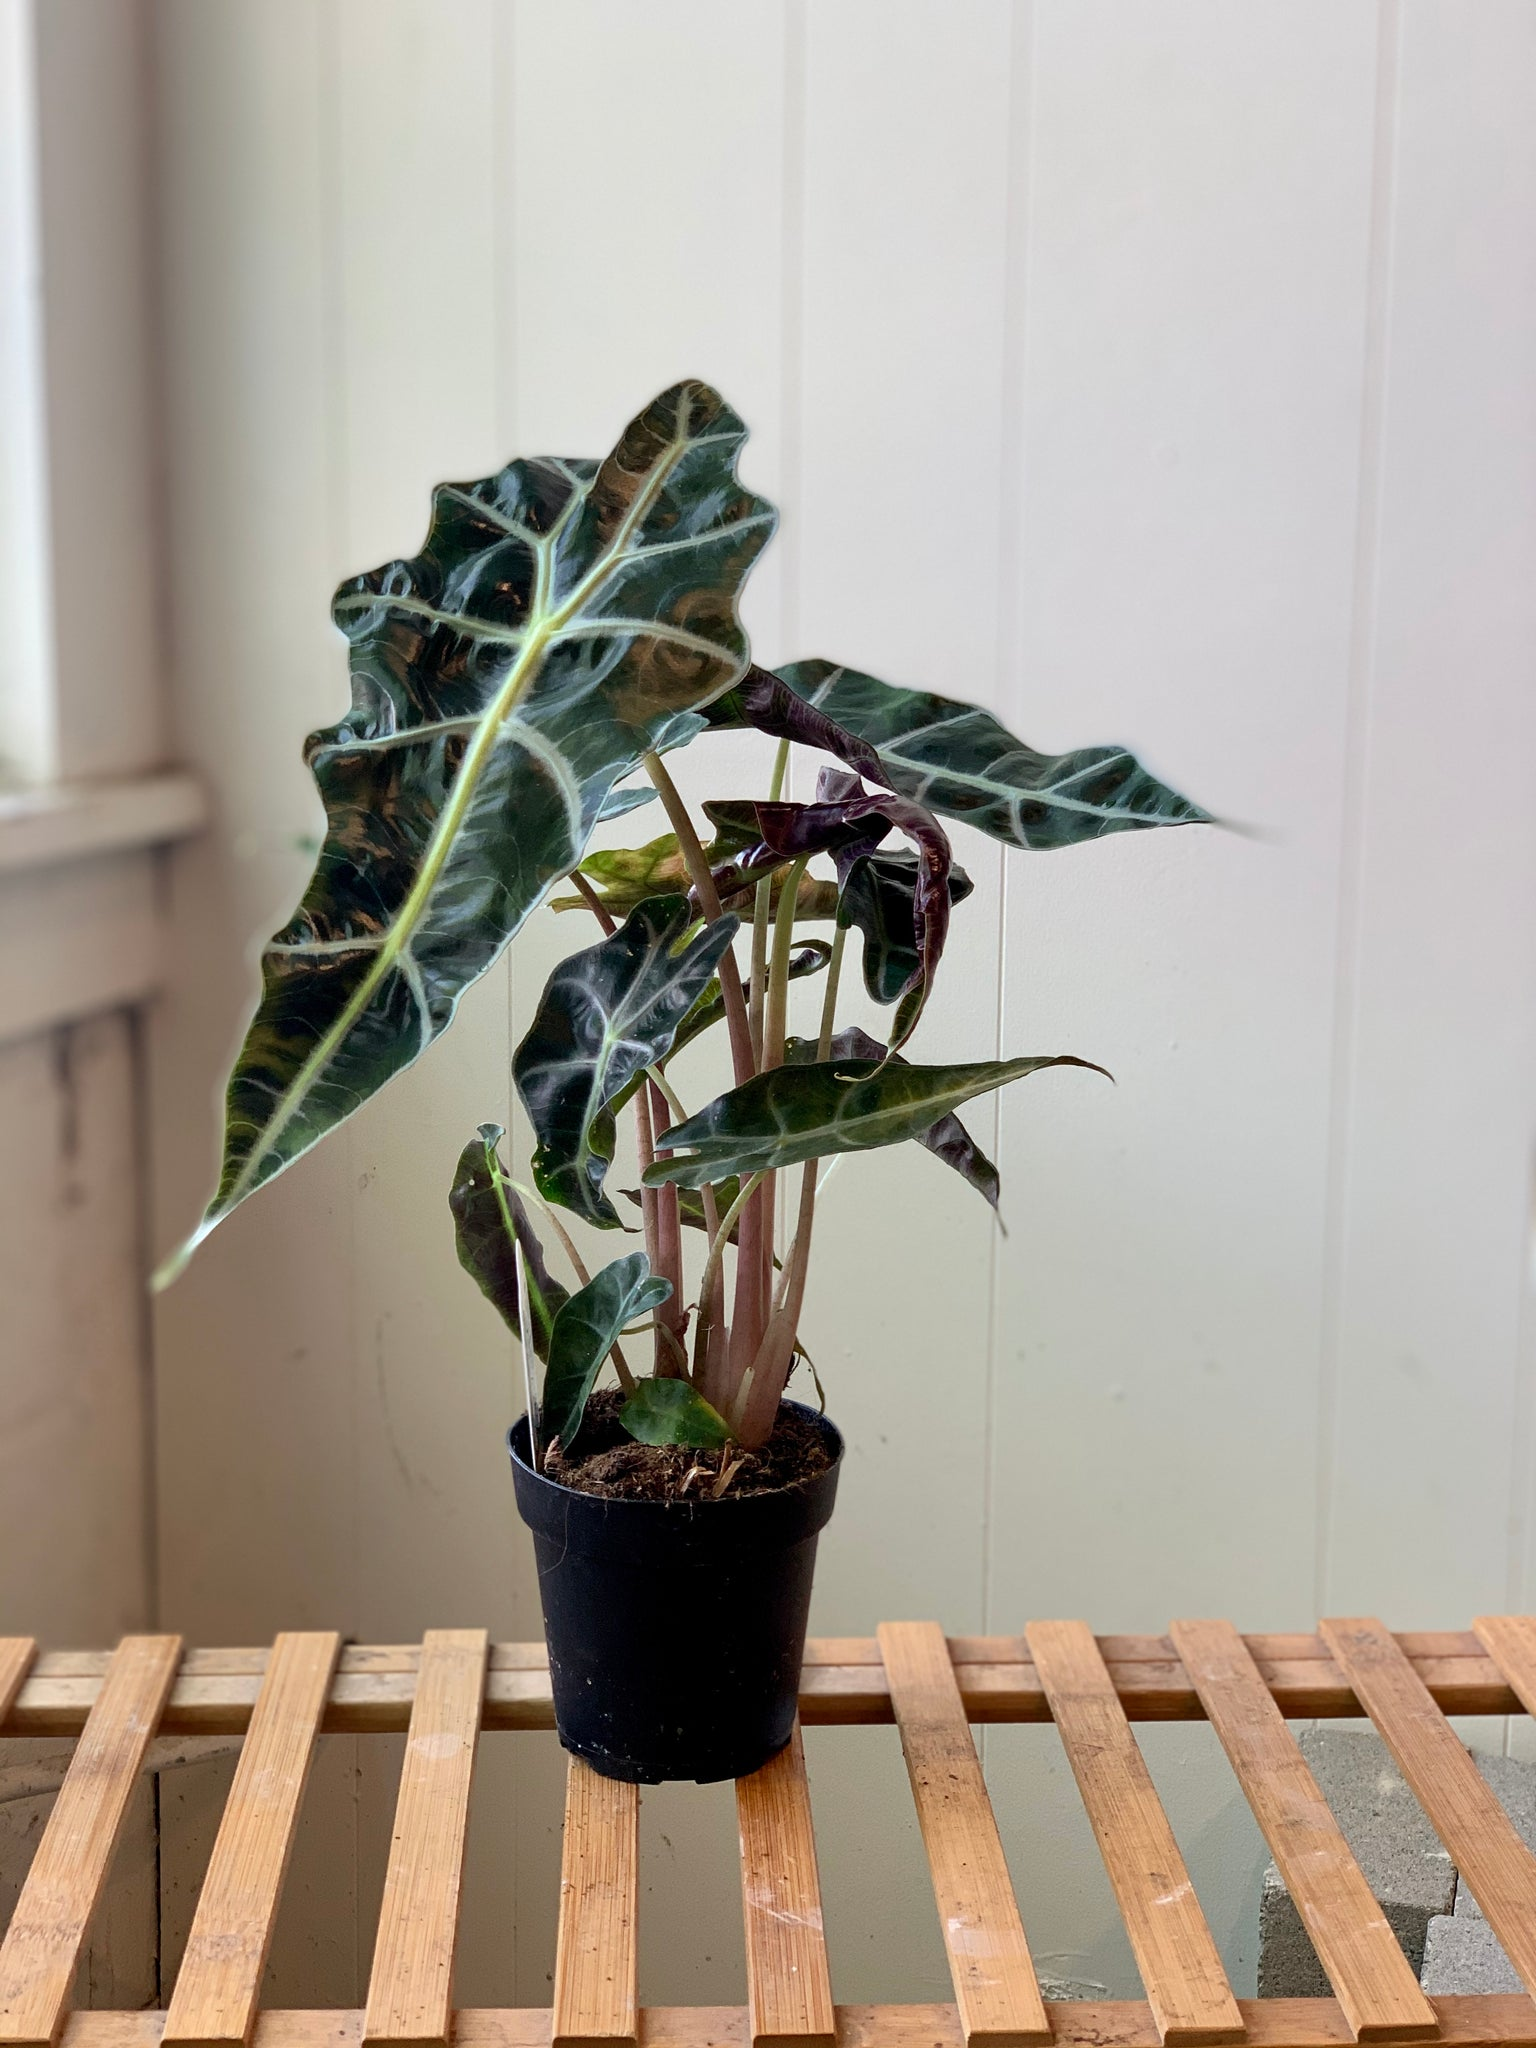 Alocasia - African Mask